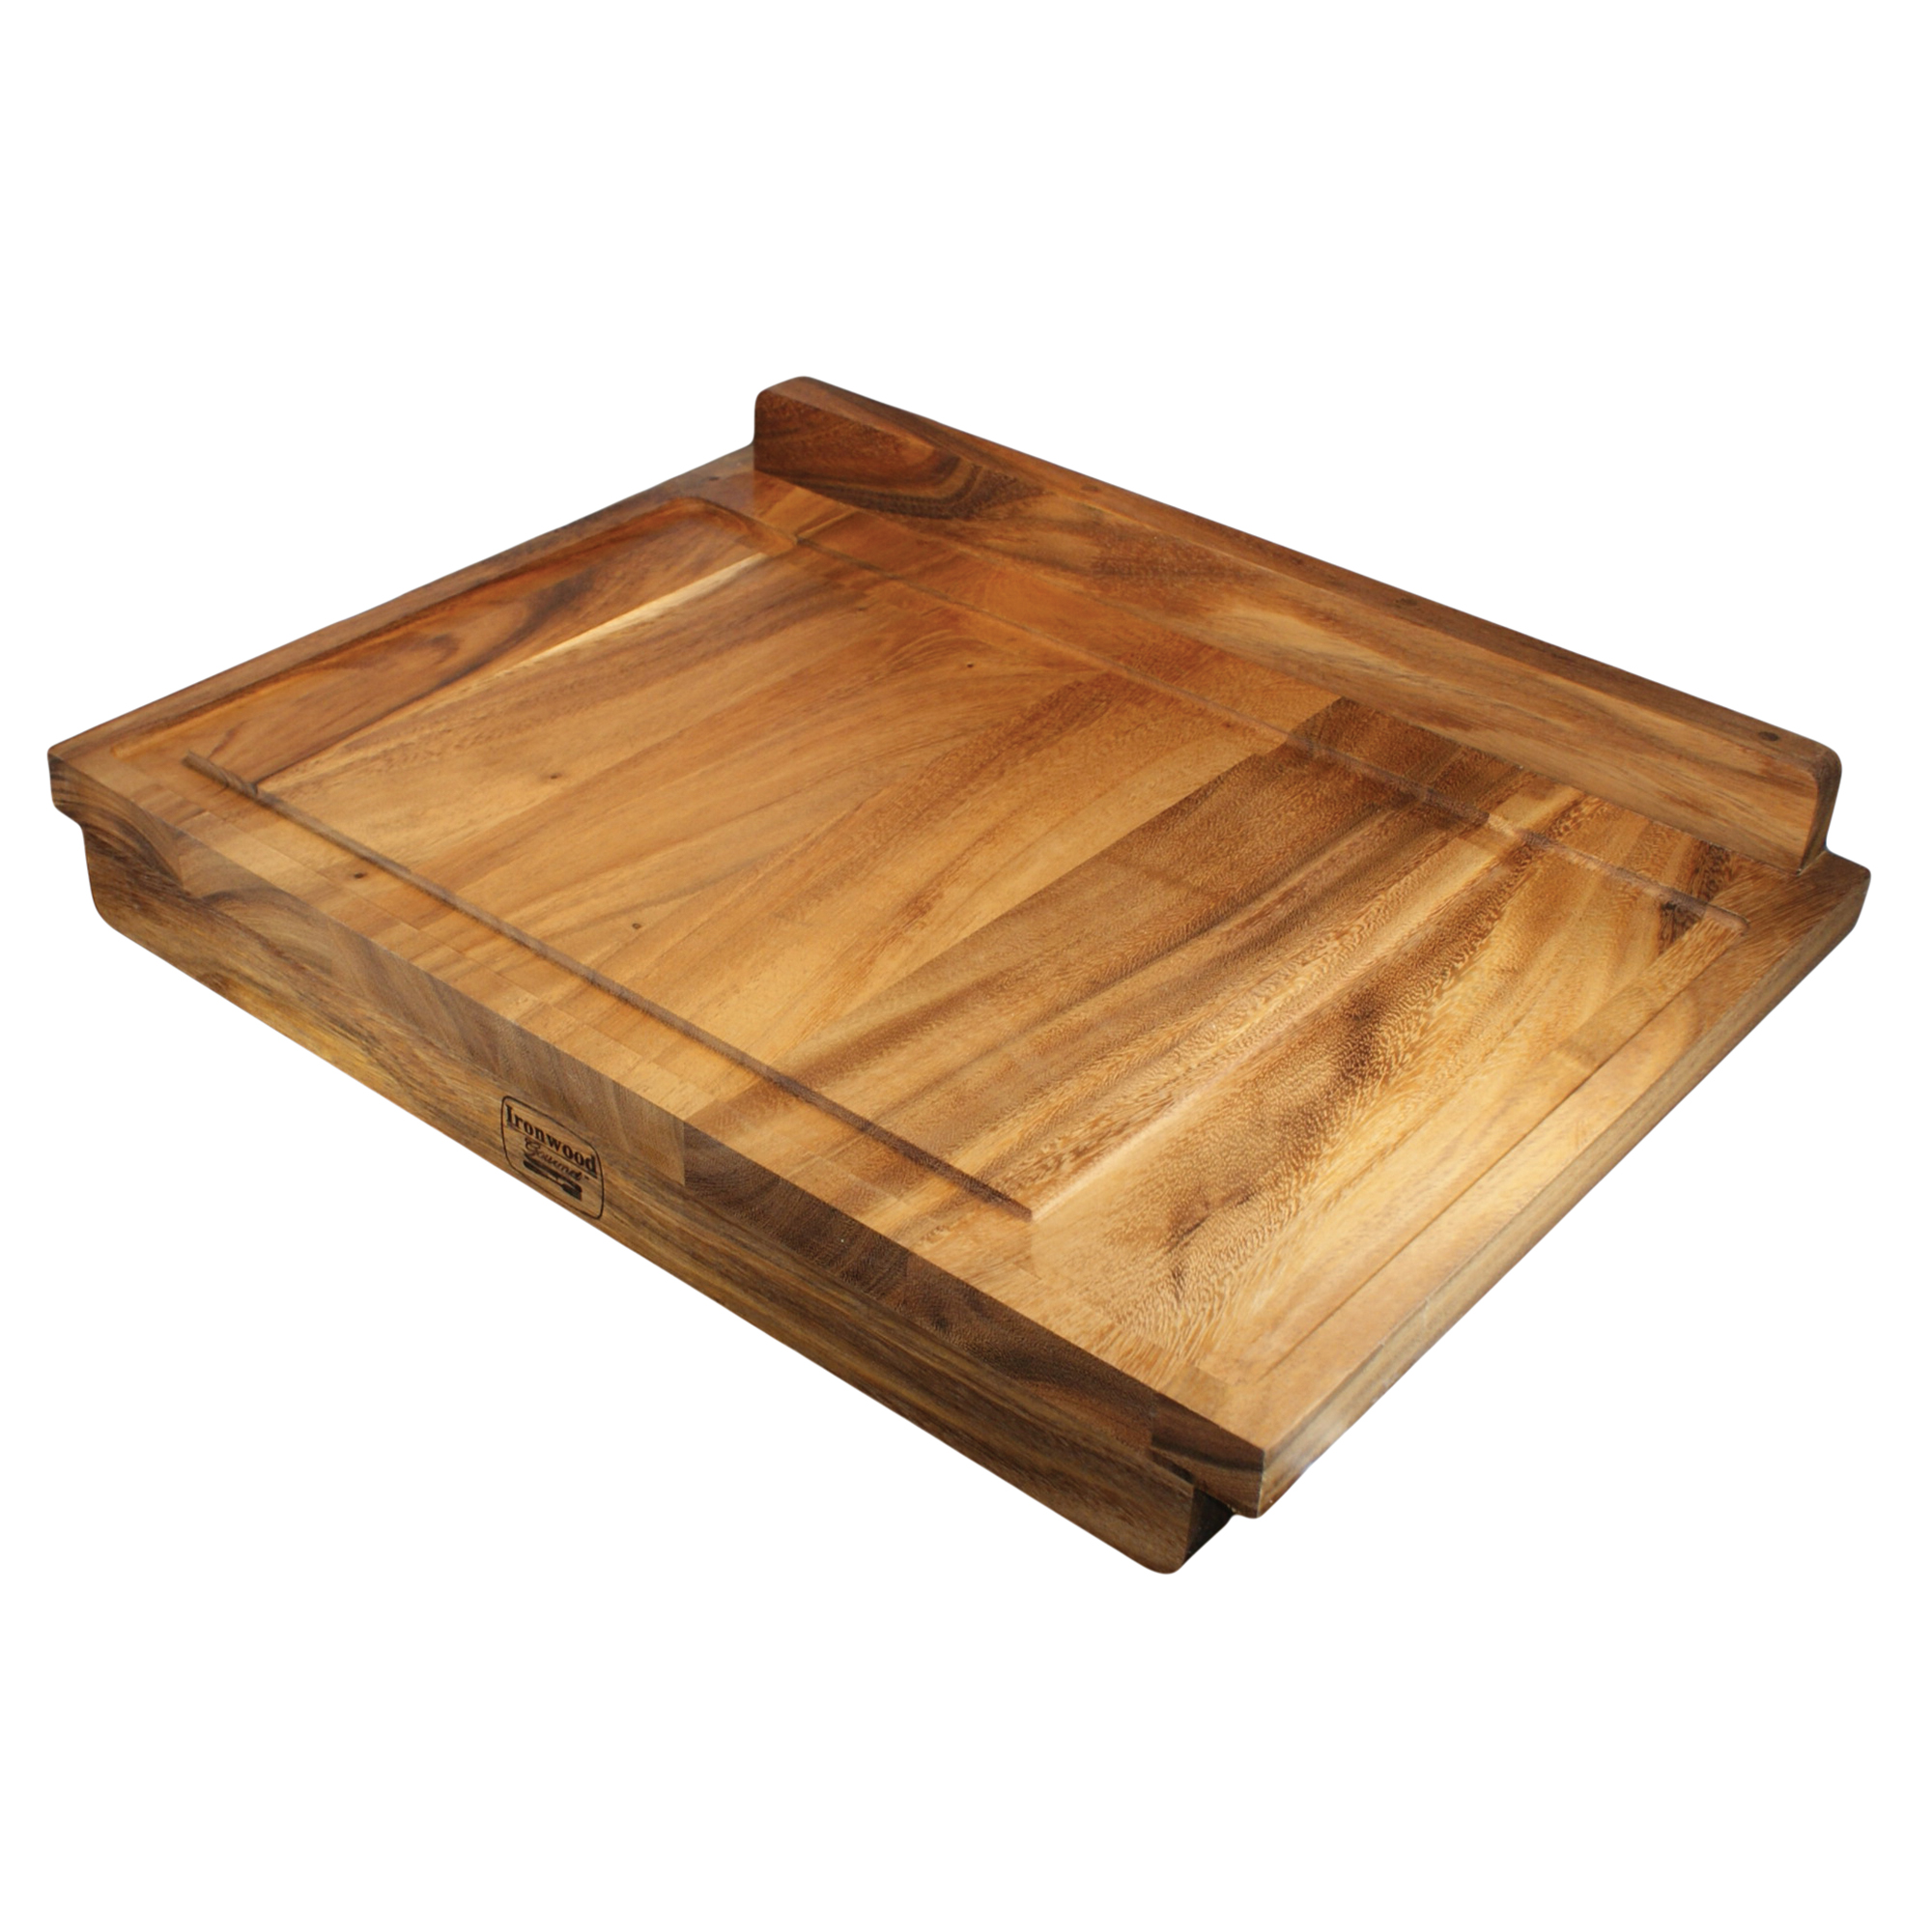 Double-Sided Countertop Pastry/Cutting Board Gravy Groove, Acacia Wood